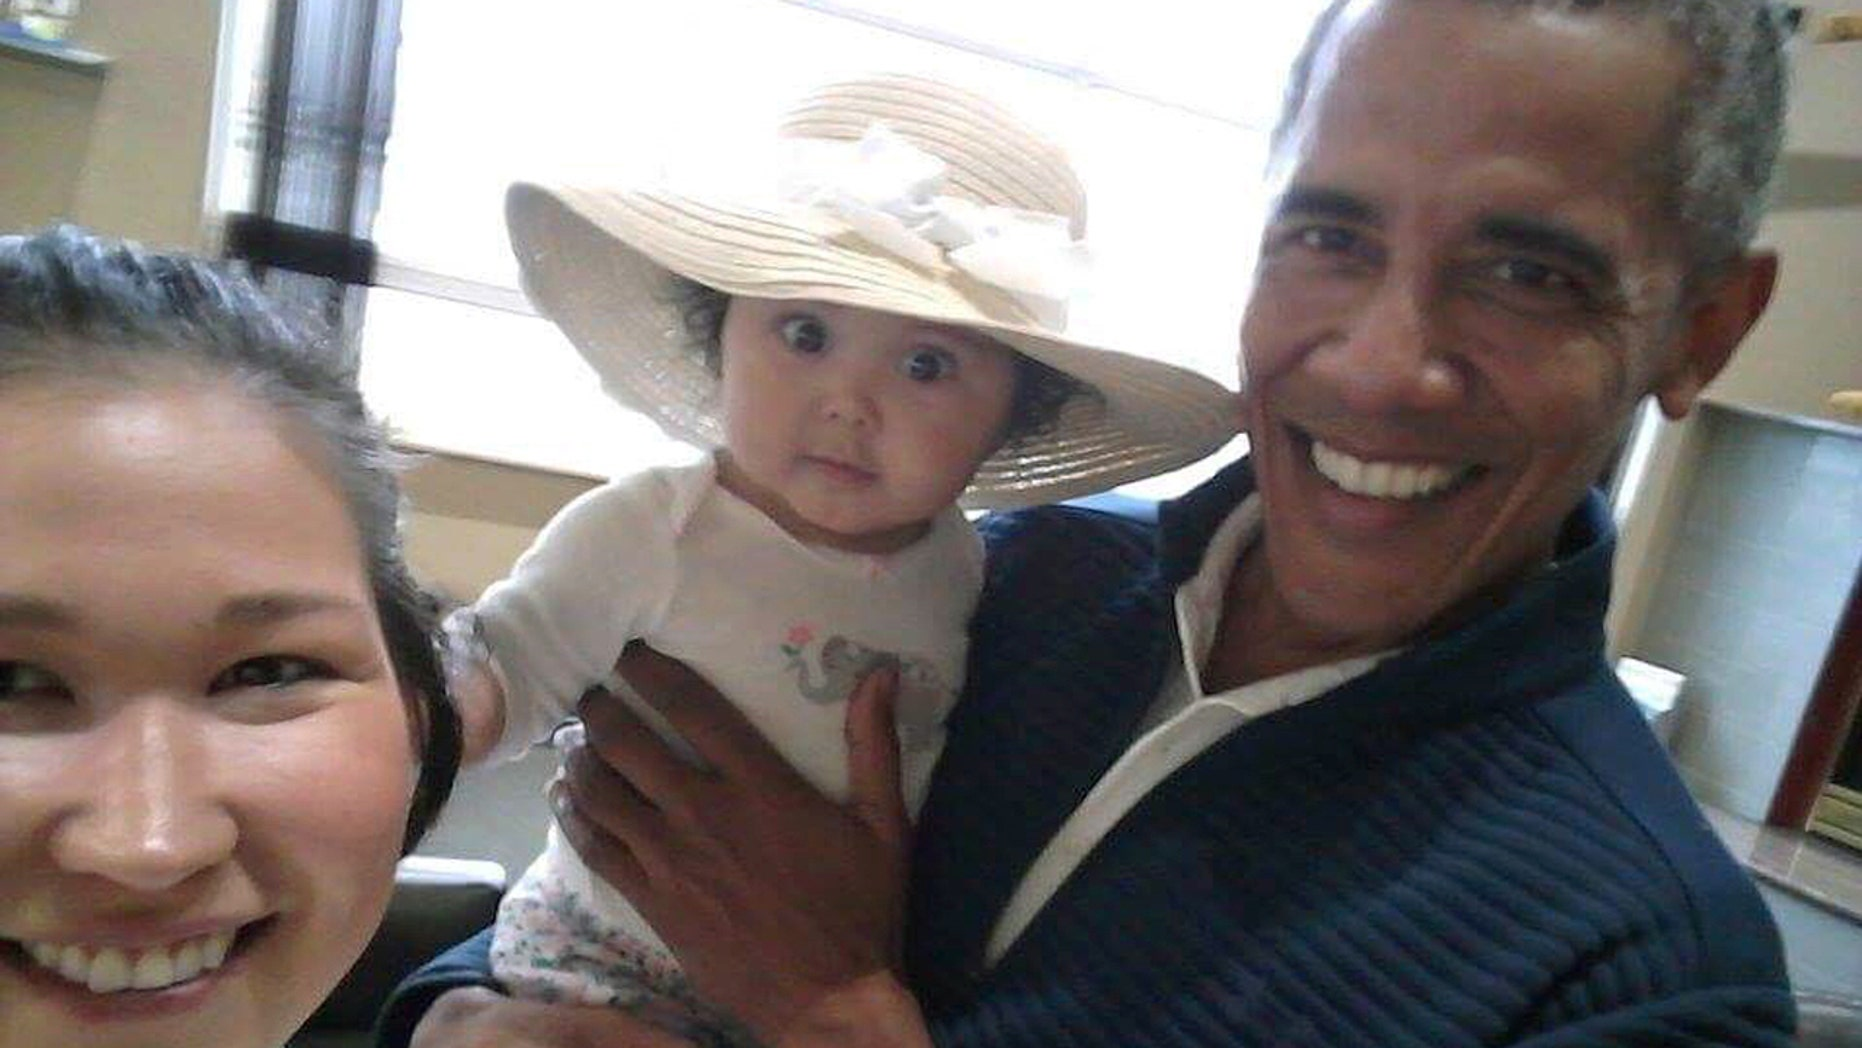 """July 3: .S. President Barack Obama holds Jackinsky's 6-month-old baby girl while posing for a selfie with the pair at a waiting area at Anchorage International Airport, in Anchorage, Alaska. Jackinsky said Obama walked up to her and asked, """"Who is this pretty girl?"""""""